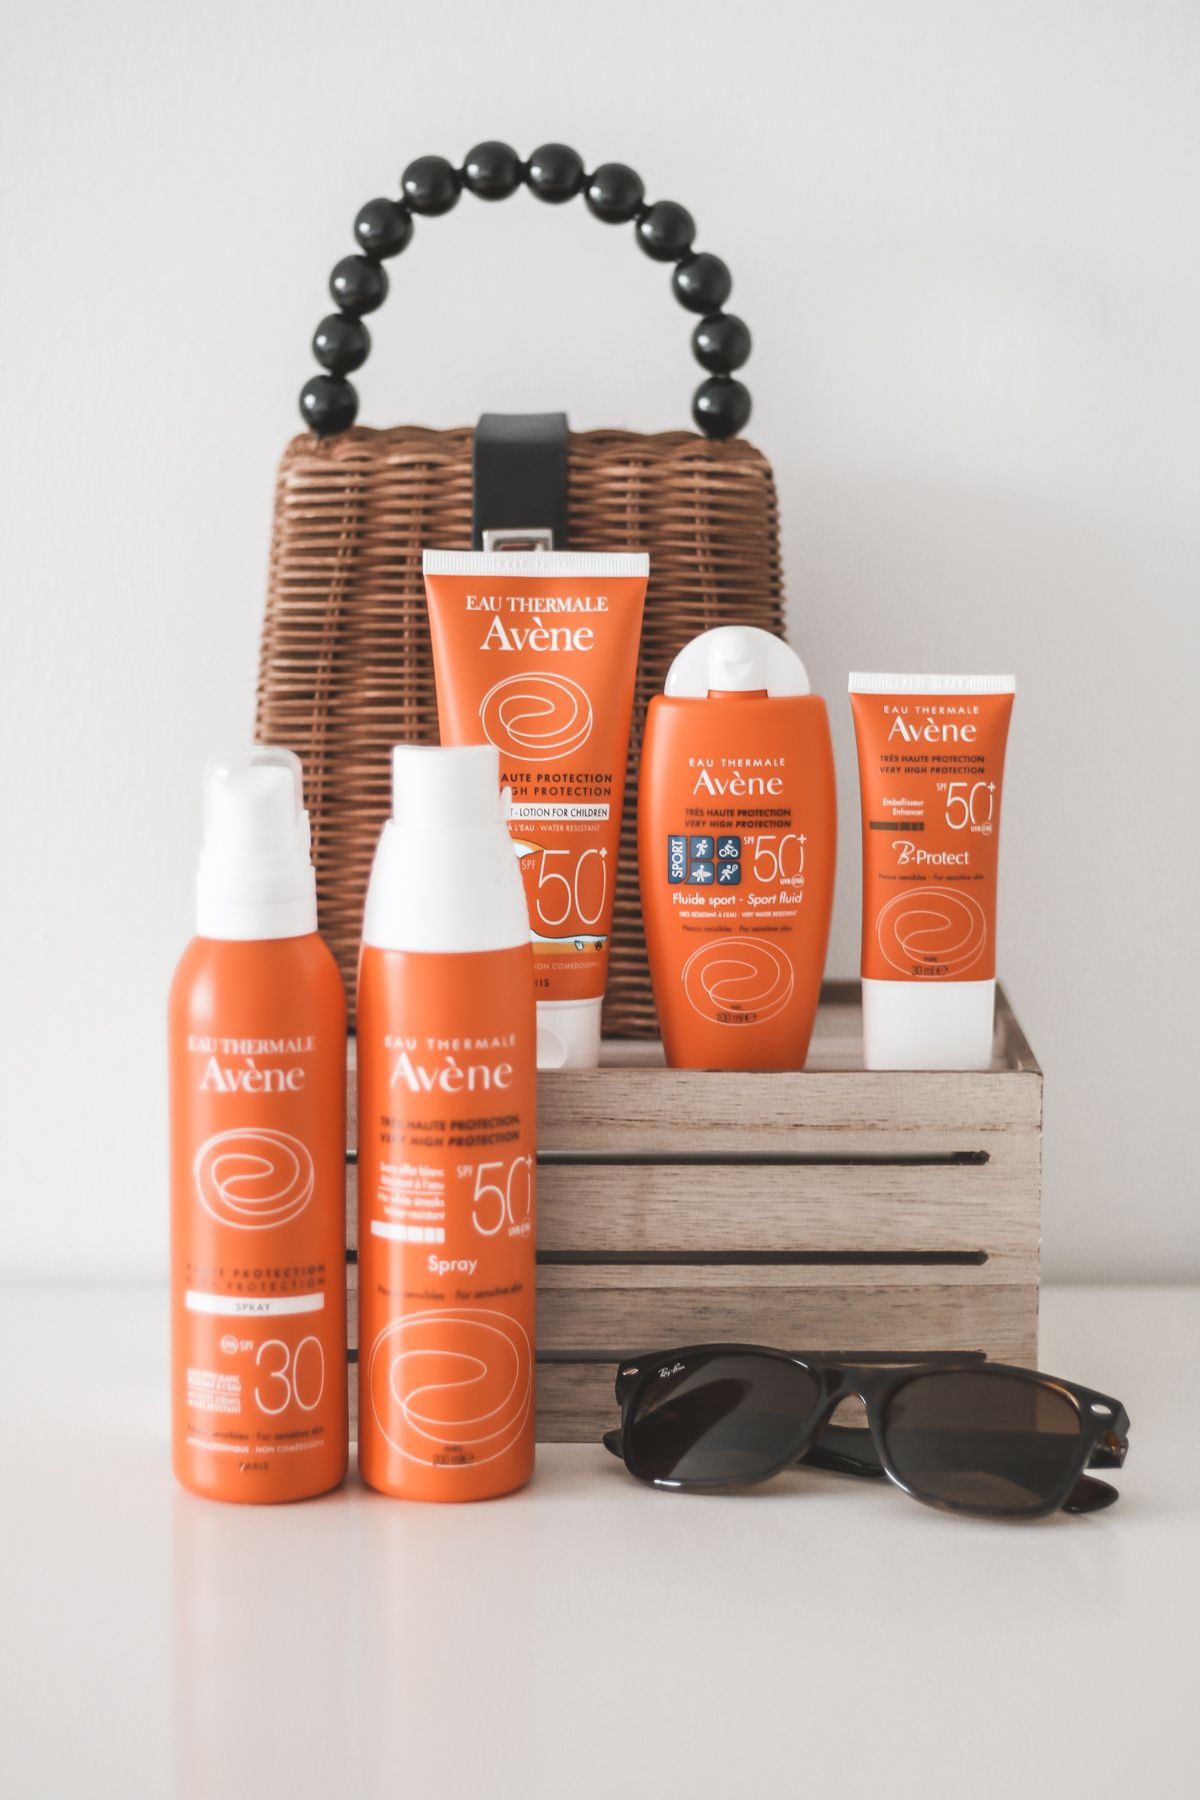 Avene Expert Sun Care Routine Five New Sun Products Added